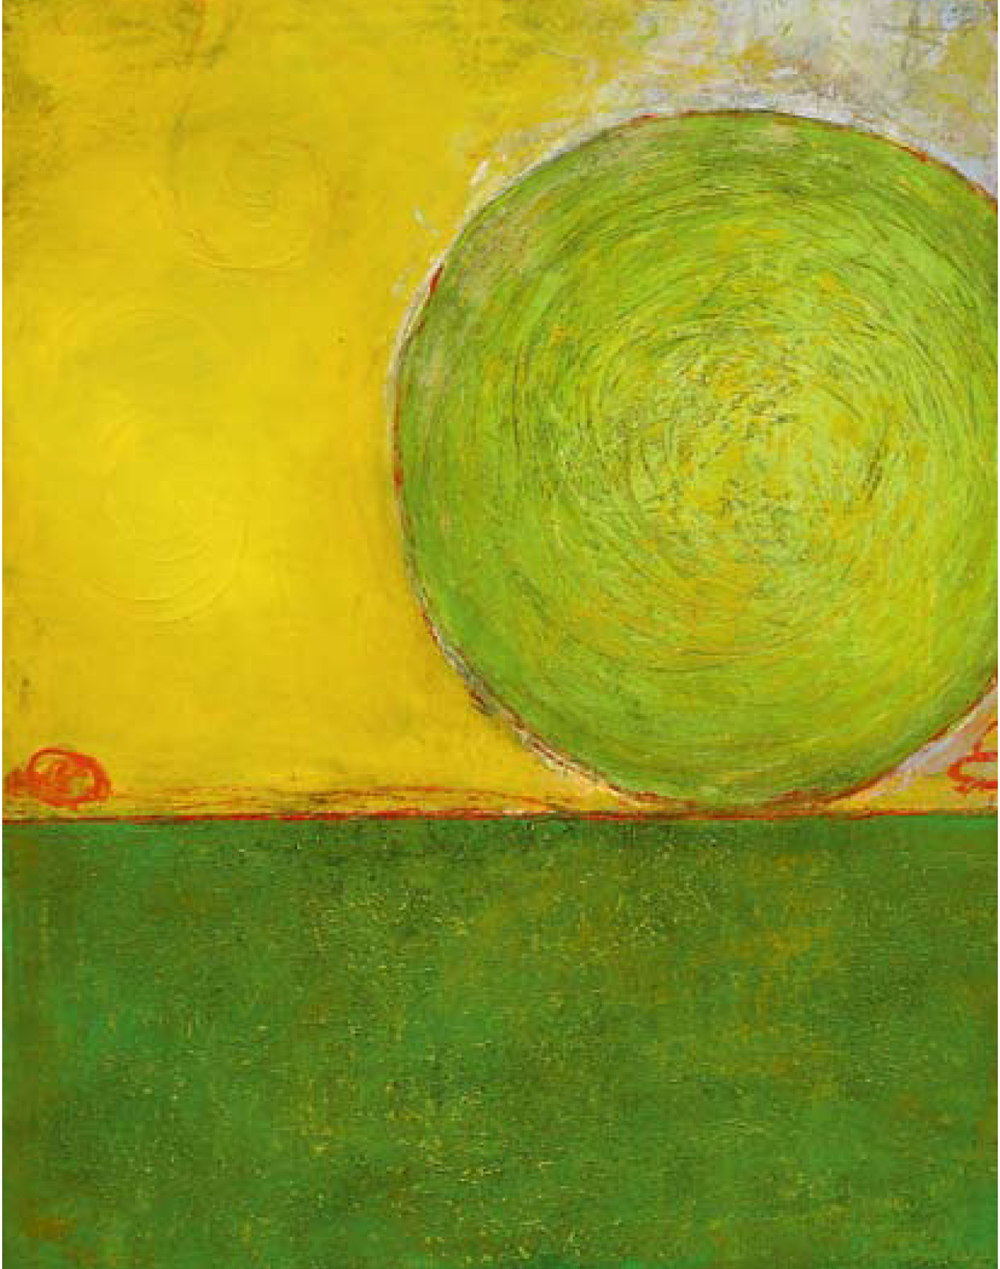 Toplev, Green Energy Ball on Peaceful Ground